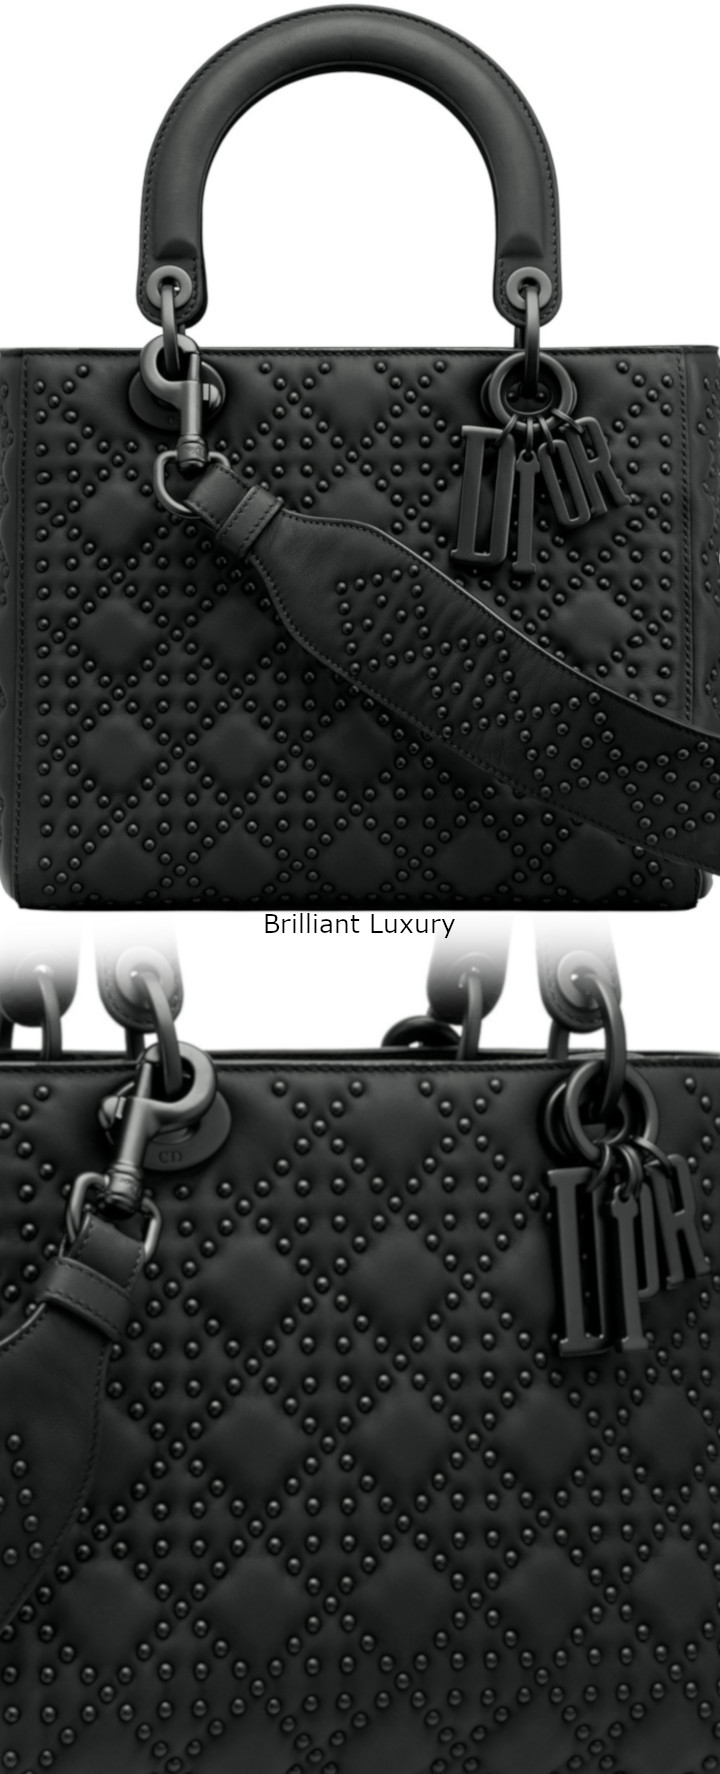 Brilliant Luxury│Lady DIOR Art Bag in black studded matt Cannage calfskin and ultra-black finish metal jewellery